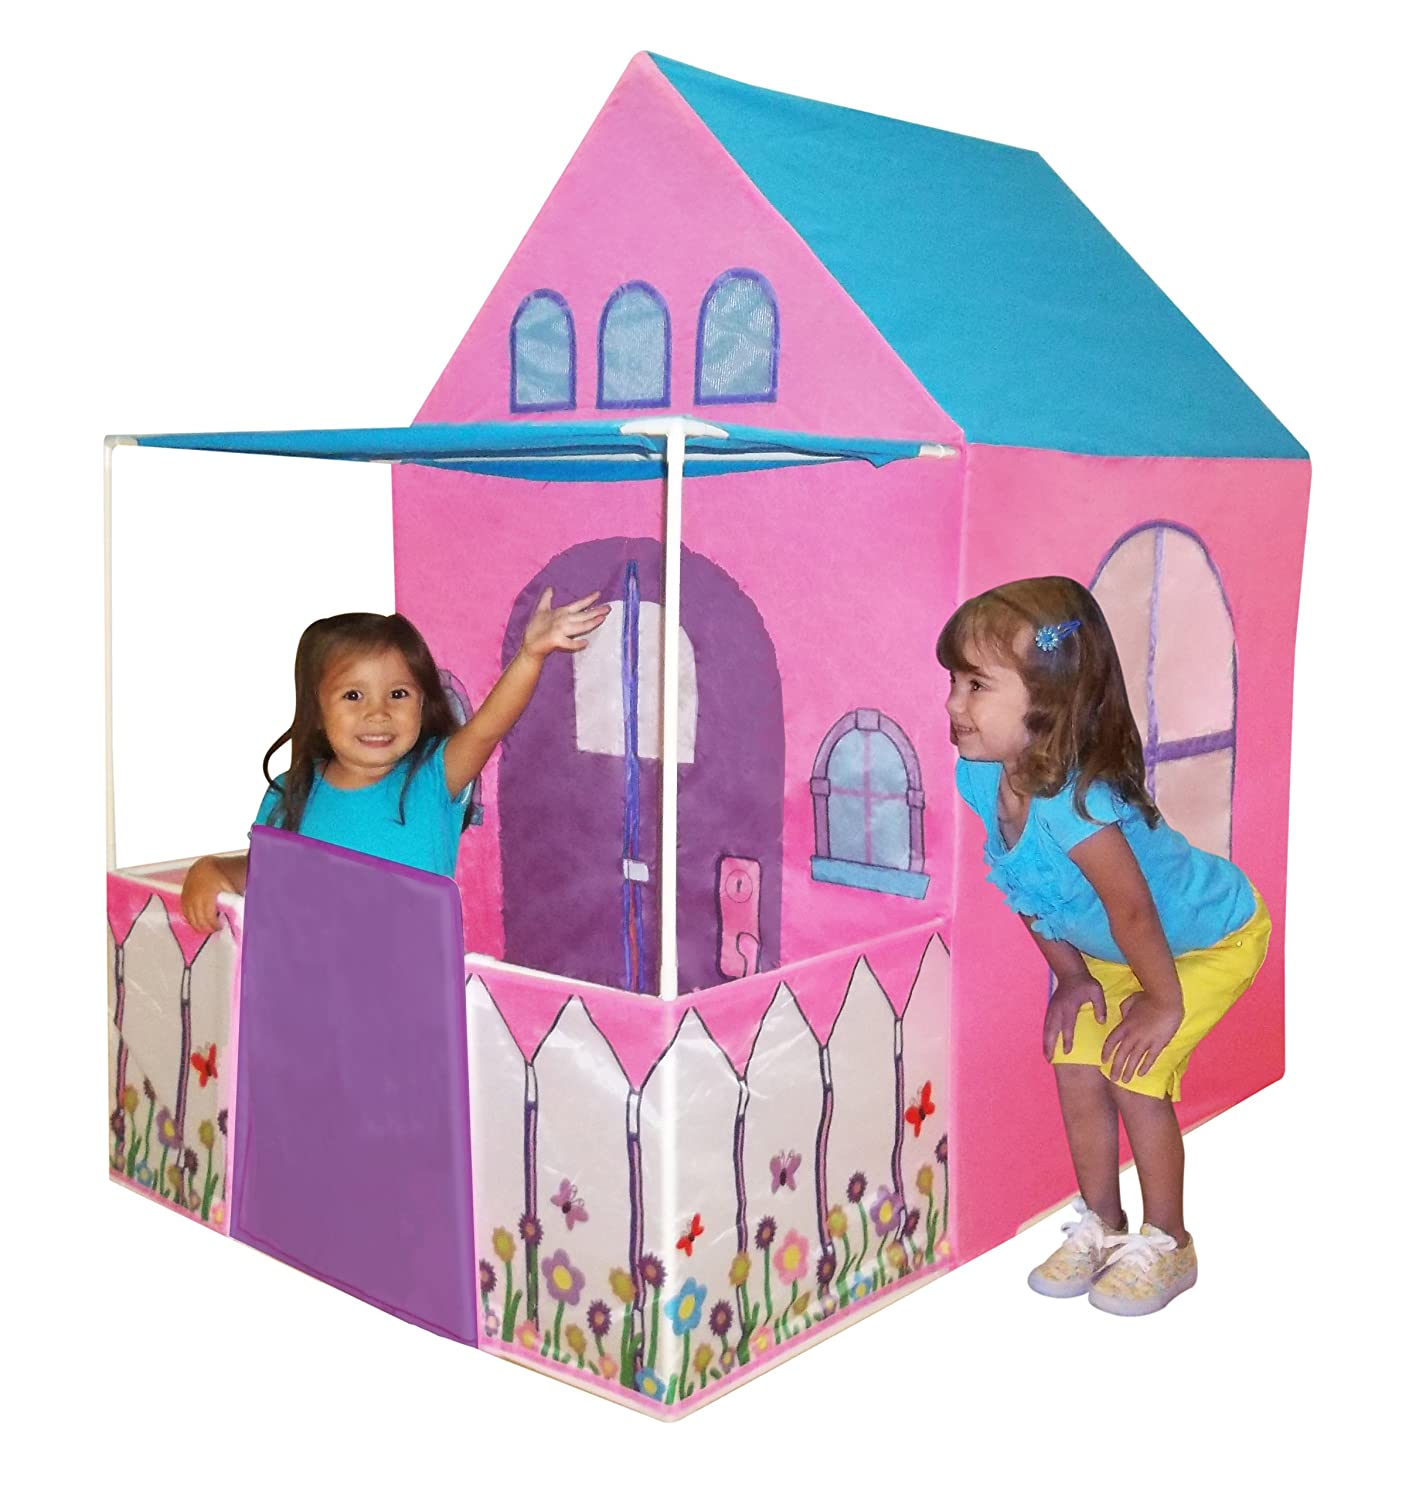 Playhouse Victorian Princess Castle Play tent with fenced patio by Kids Adventure by Kids Adventure günstig